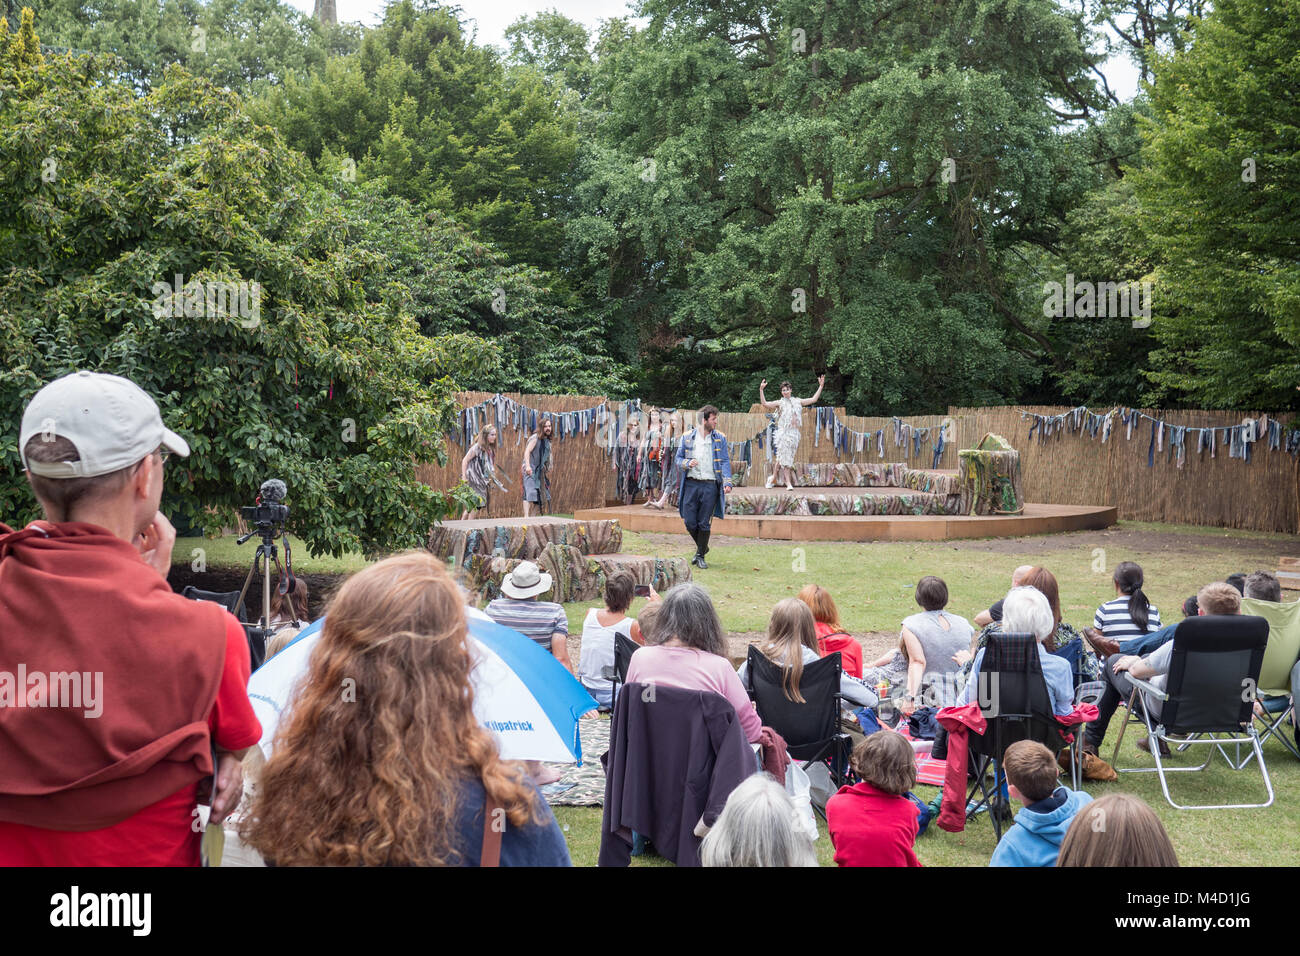 Actors performing at The Dell outdoor theatre in Stratford upon Avon Warwickshire England UK - Stock Image